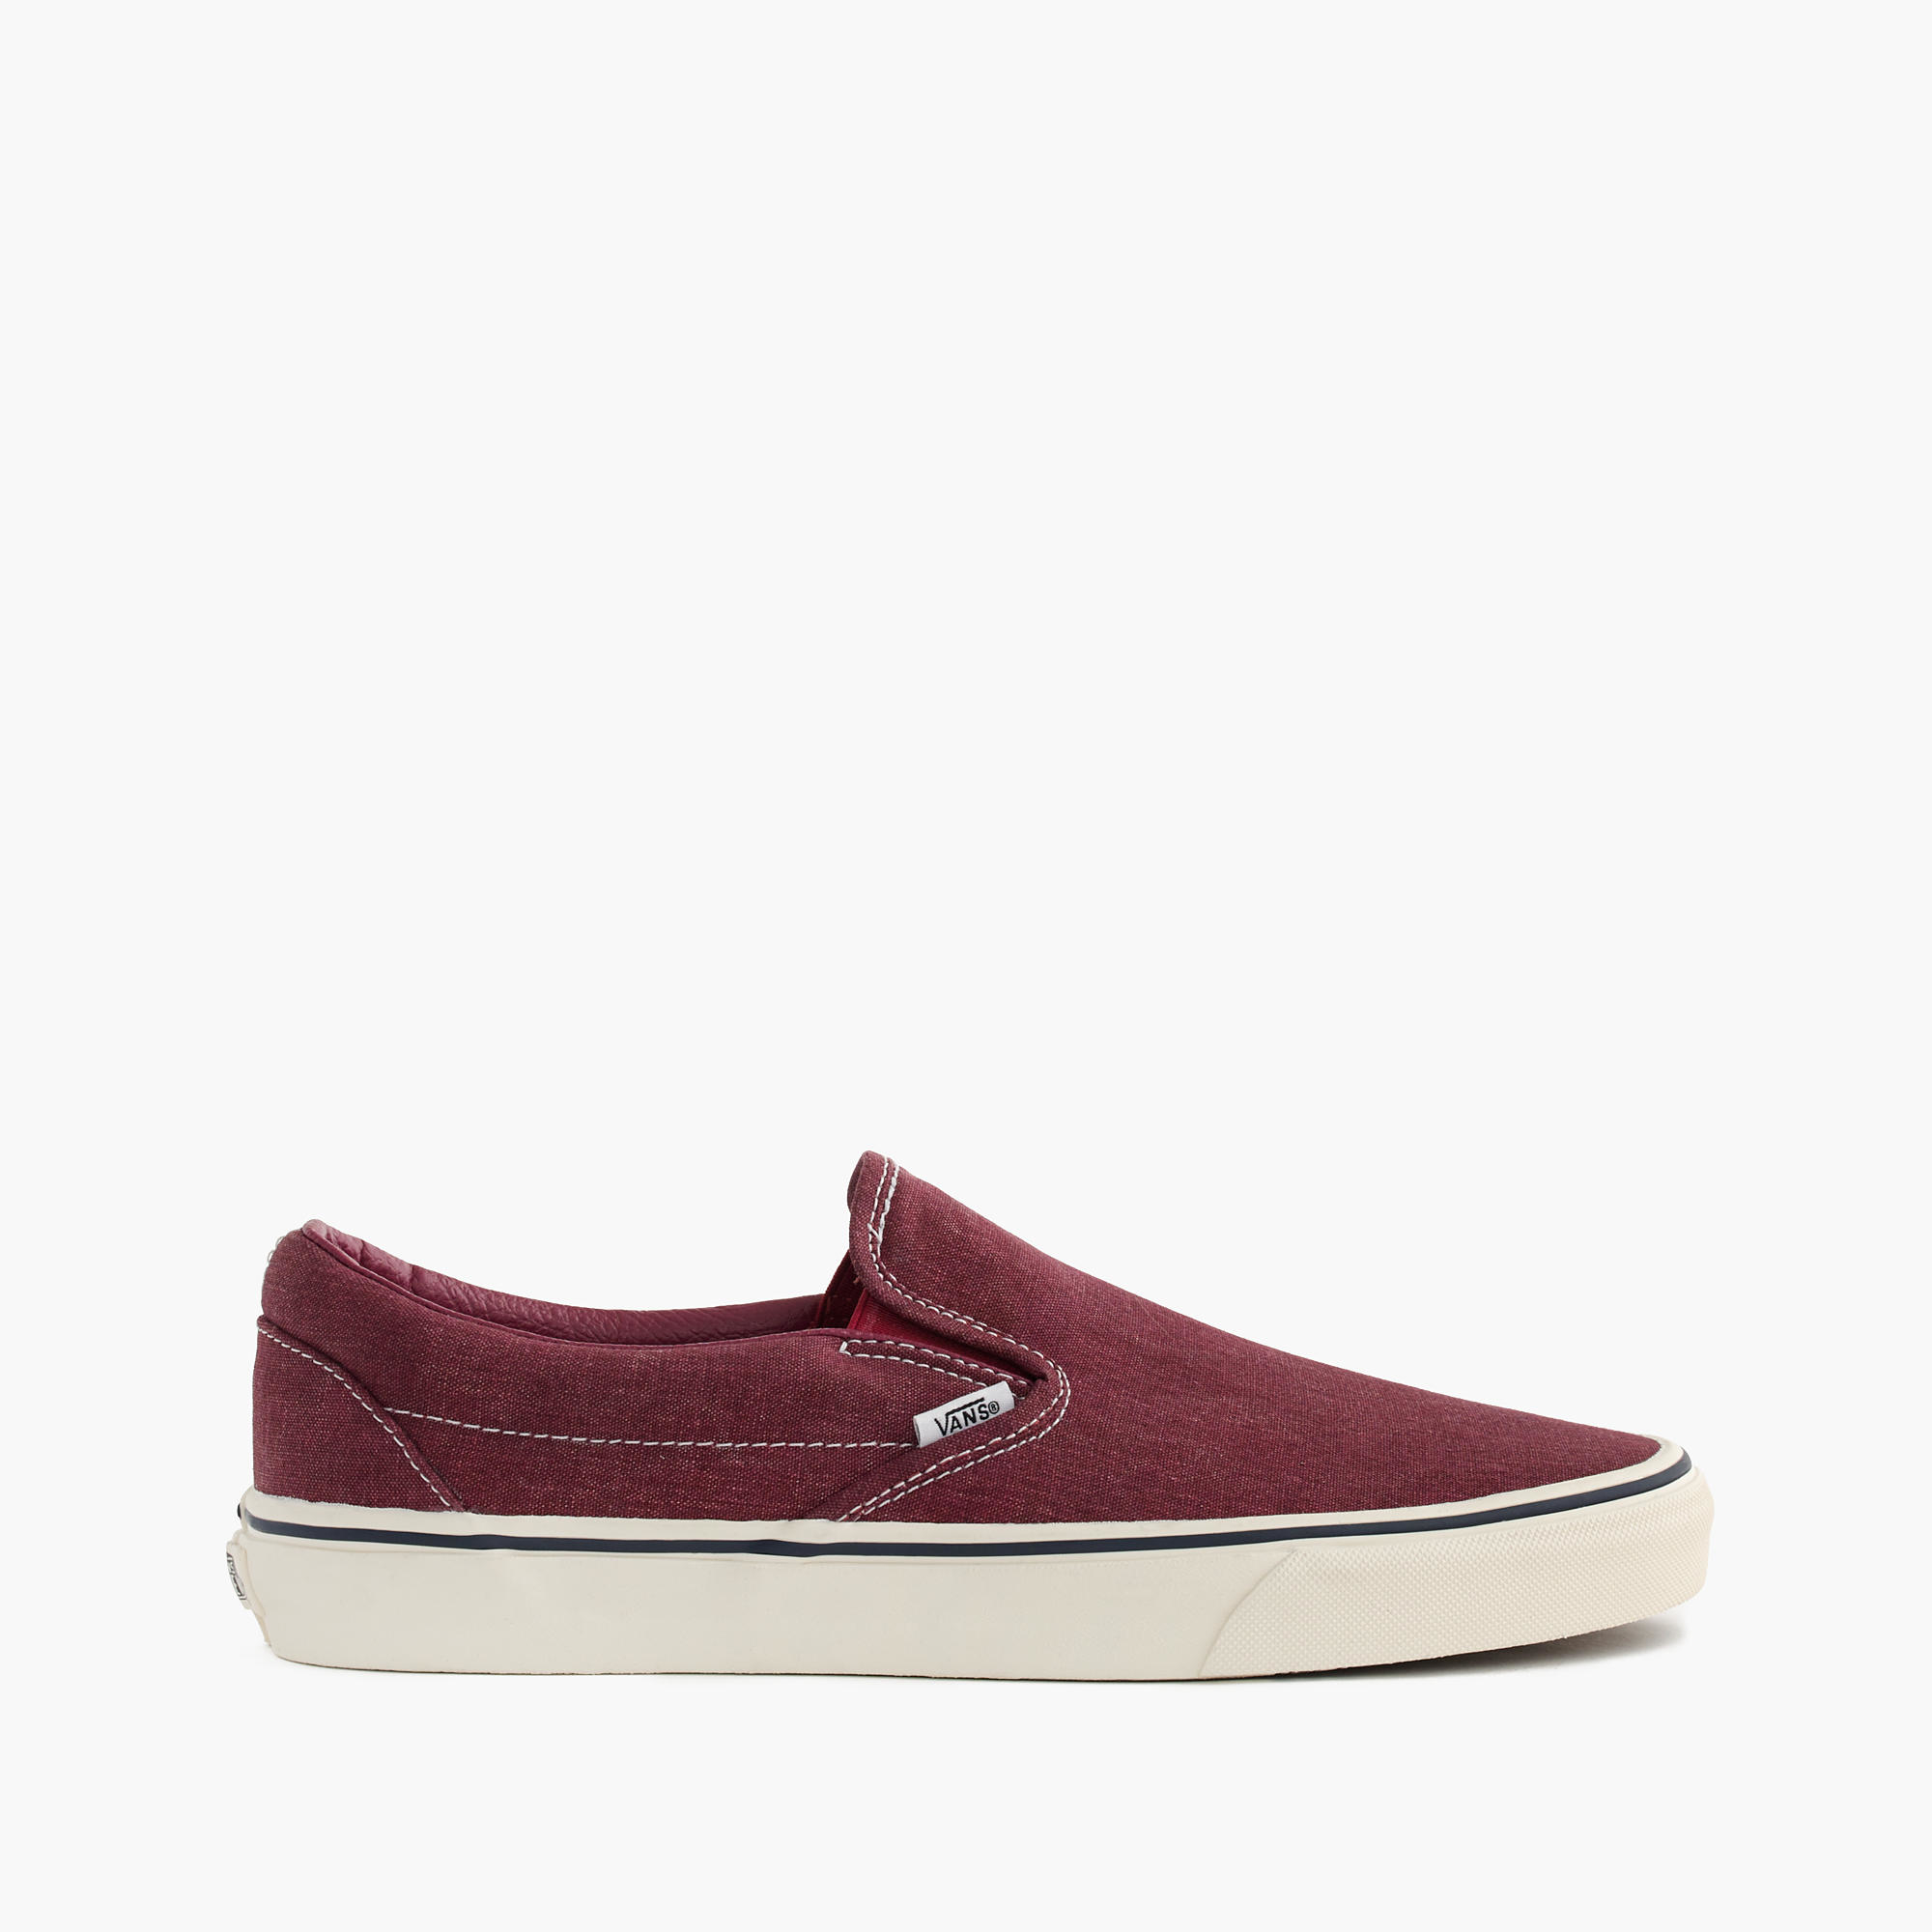 a356f8e02 J.Crew Vans Washed Canvas Classic Slip-on Sneakers in Red - Lyst